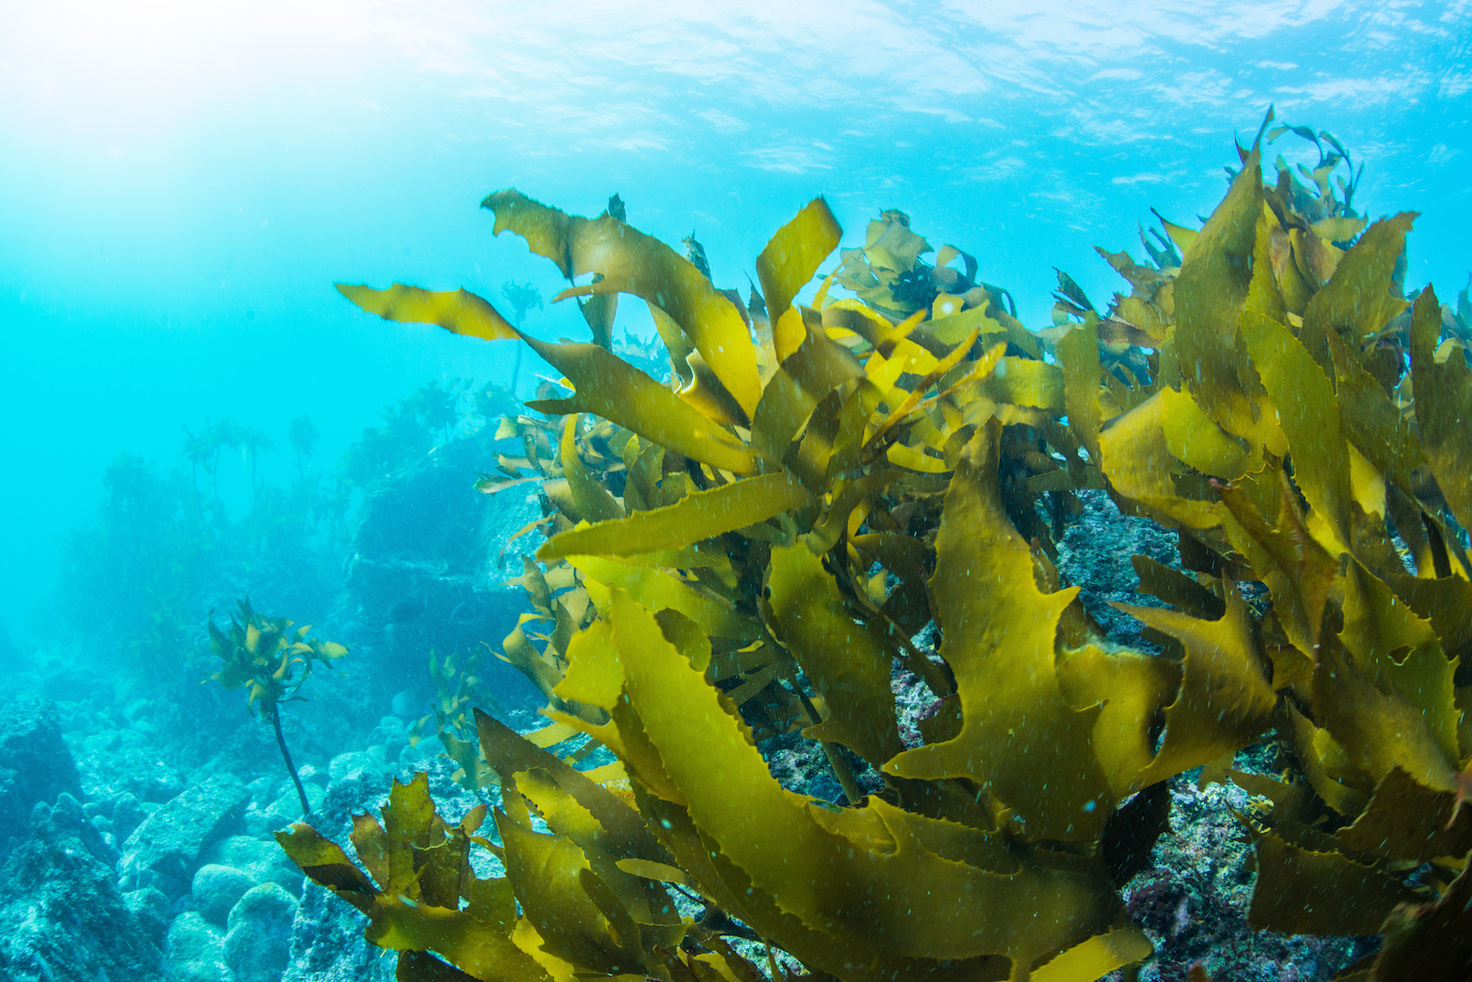 A new material derived from seaweed that can help improve the performance of superconductors, lithium-ion batteries, and fuel cells.